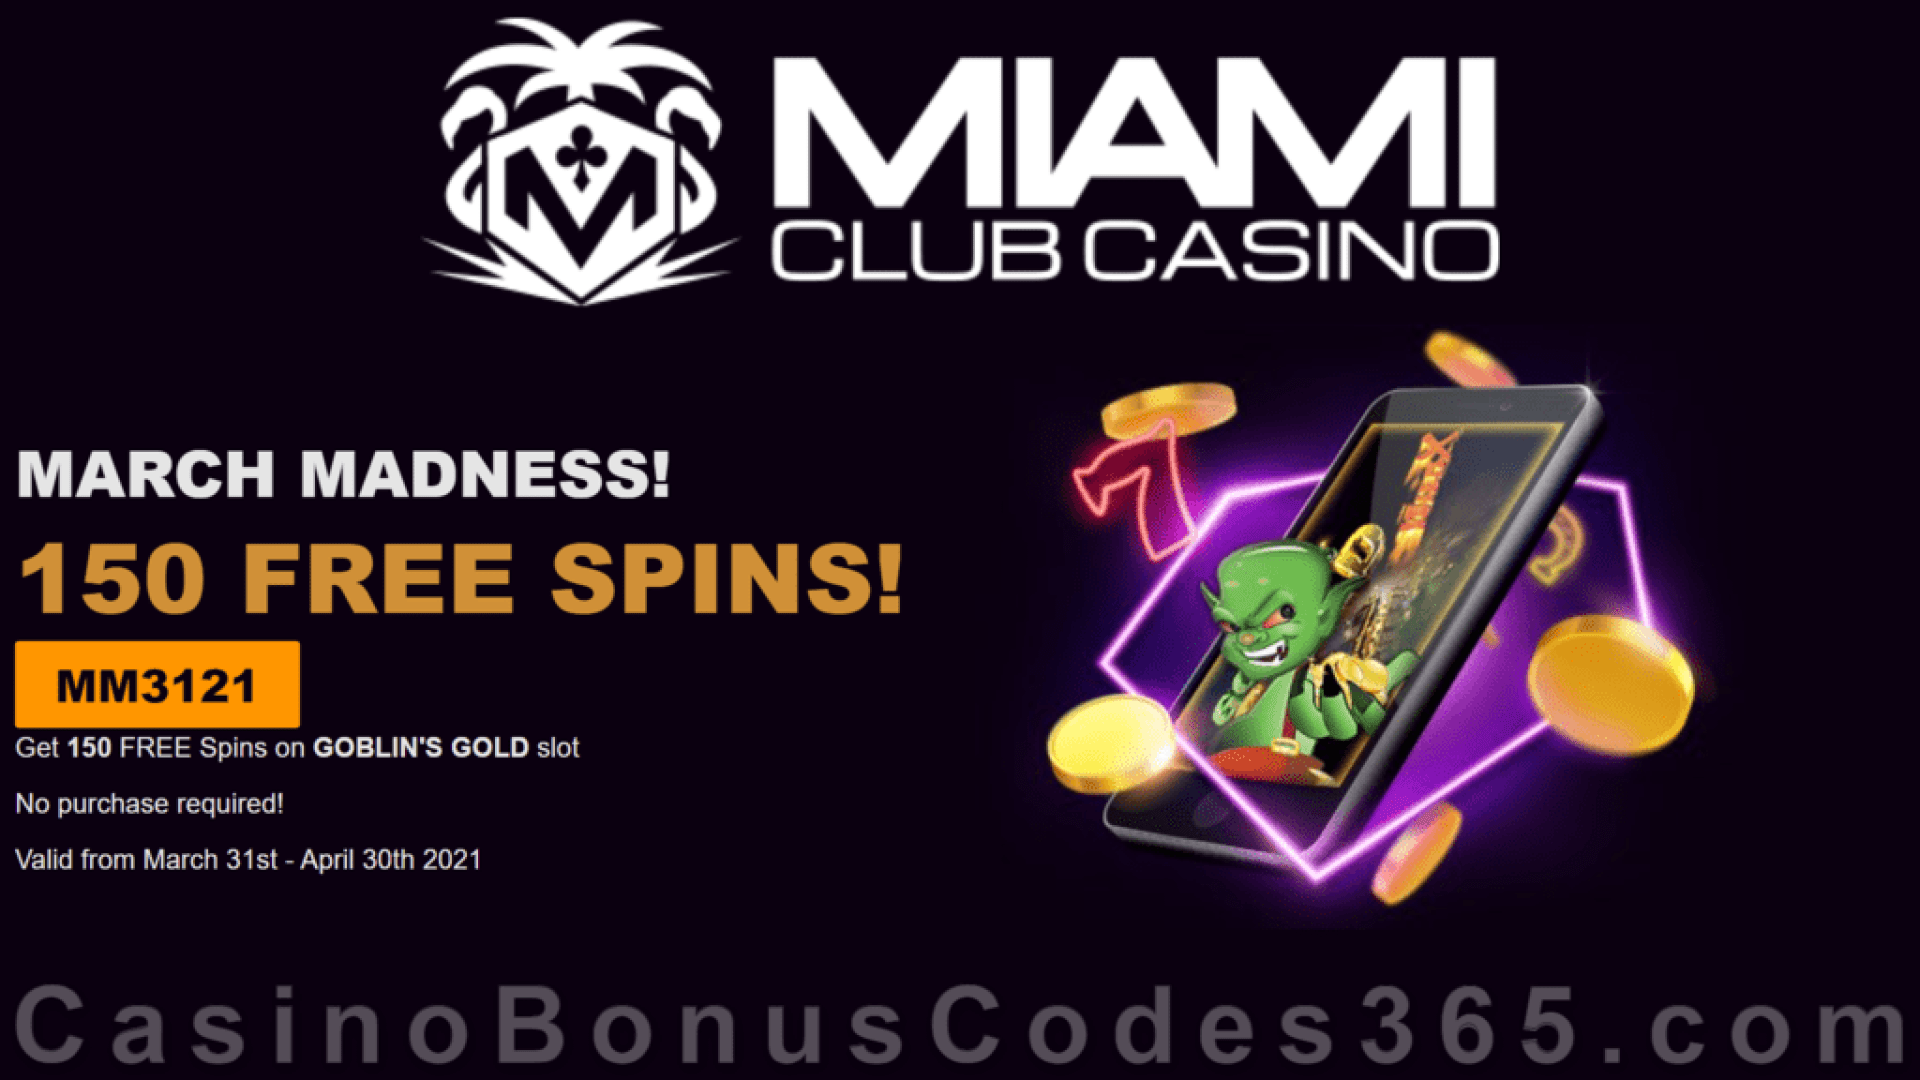 Miami Club Casino 150 FREE WGS Goblin's Gold Spins March Madness Week 5 Massive No Deposit Offer